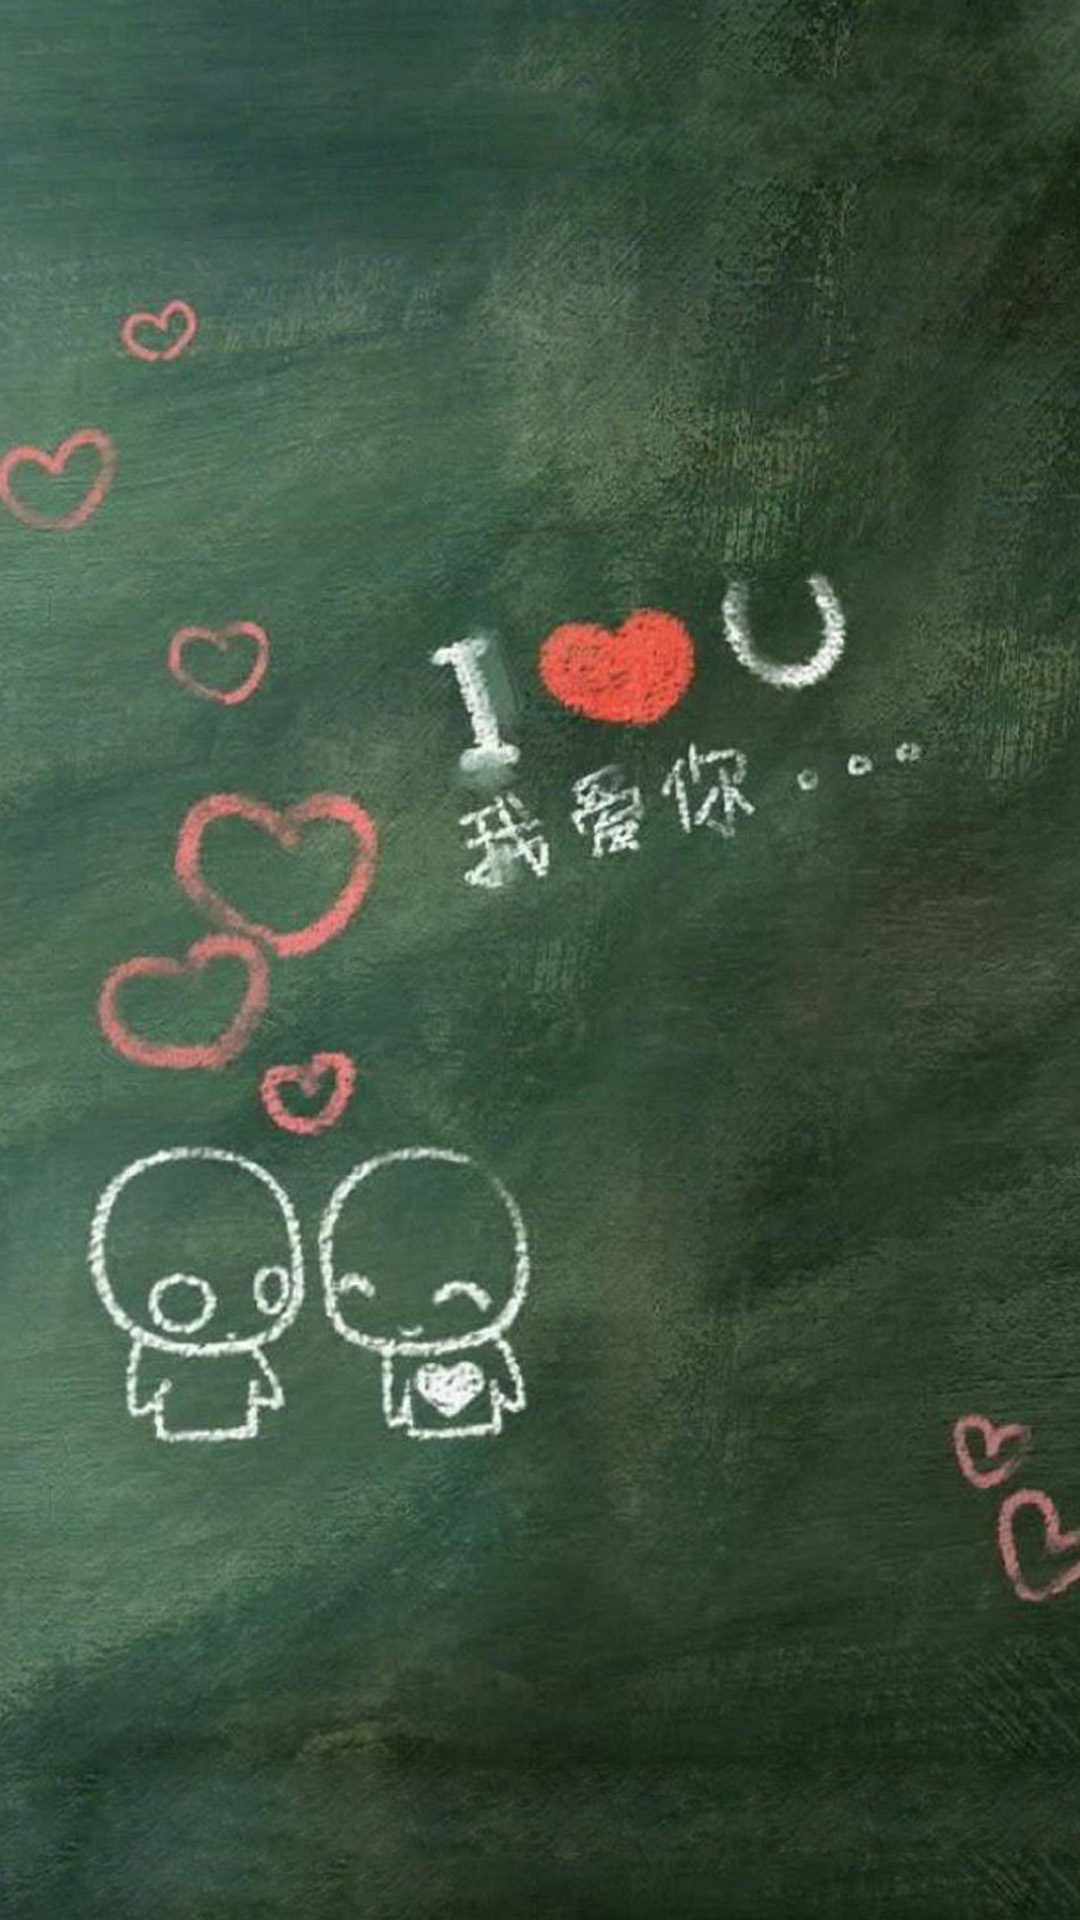 I Love You Chinese Android Wallpaper Love U Wallpaper For I Phone 1080x1920 Download Hd Wallpaper Wallpapertip You can easily select your device wallpaper size to show only wallpapers compatible to your android smartphone or iphone. i love you chinese android wallpaper